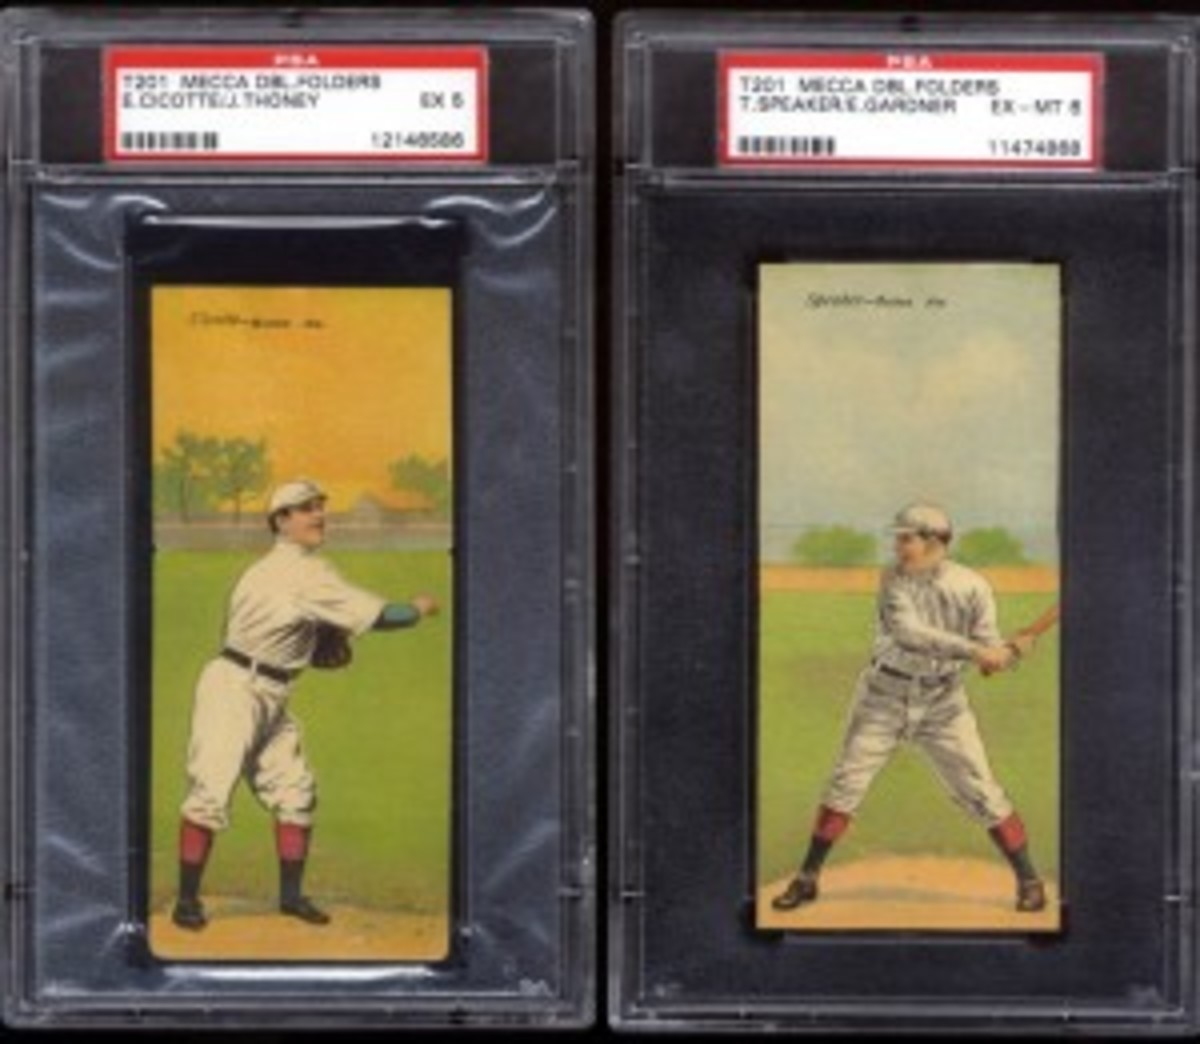 Two other popular cards from the set include Eddie Cicotte (Black Sox fame) and Hall of Famer Tris Speaker.